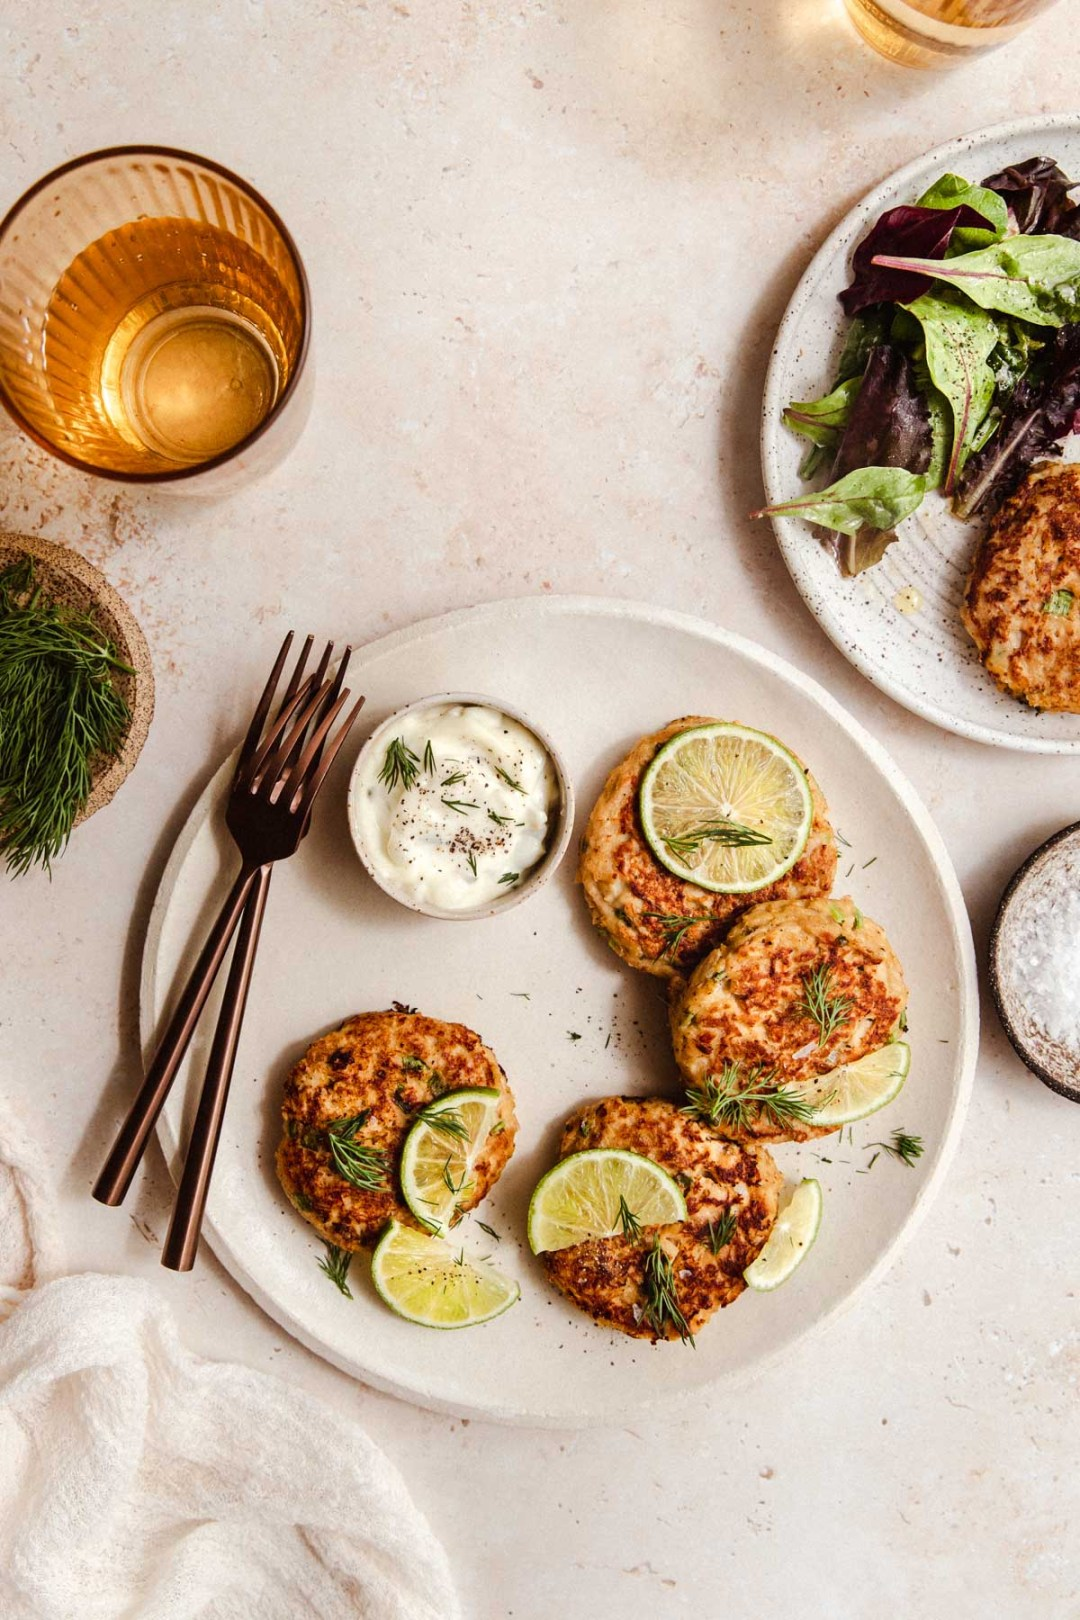 These quick and easy (and gluten free!) tuna patties are the perfect solution for easy weekday lunches that you can make ahead of time. The zesty dill pickle aioli helps keep them exciting and adds a wonderfully unexpected flavor twist.